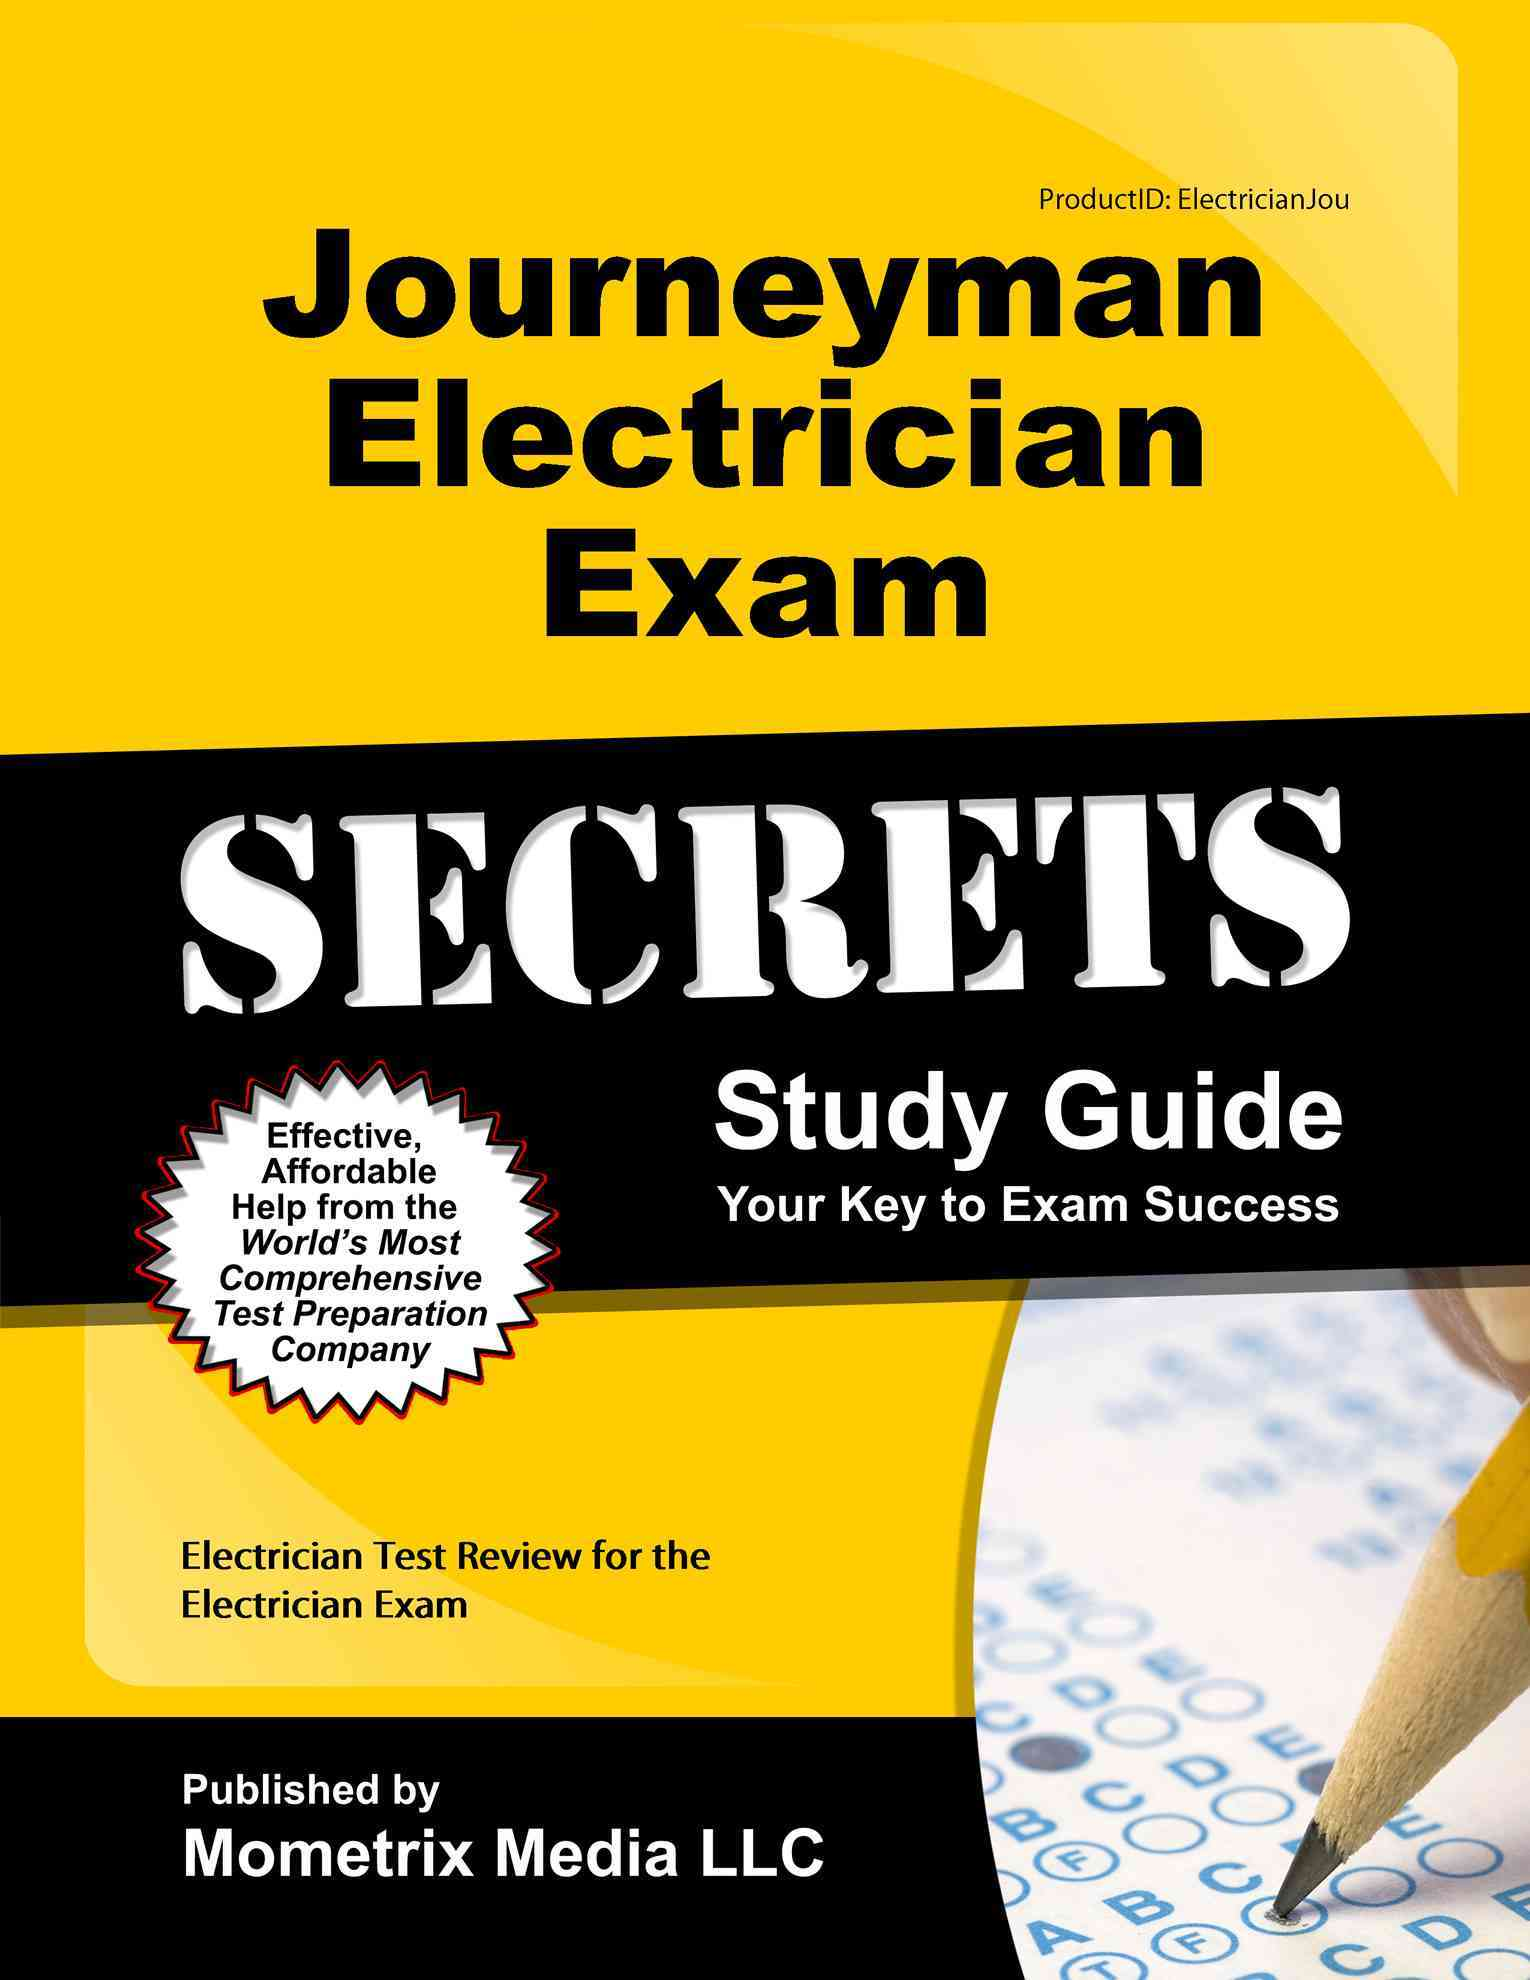 Journeyman Electrician Exam Secrets Study Guide By Electrician Exam Secrets (EDT) [Study Guide Edition]